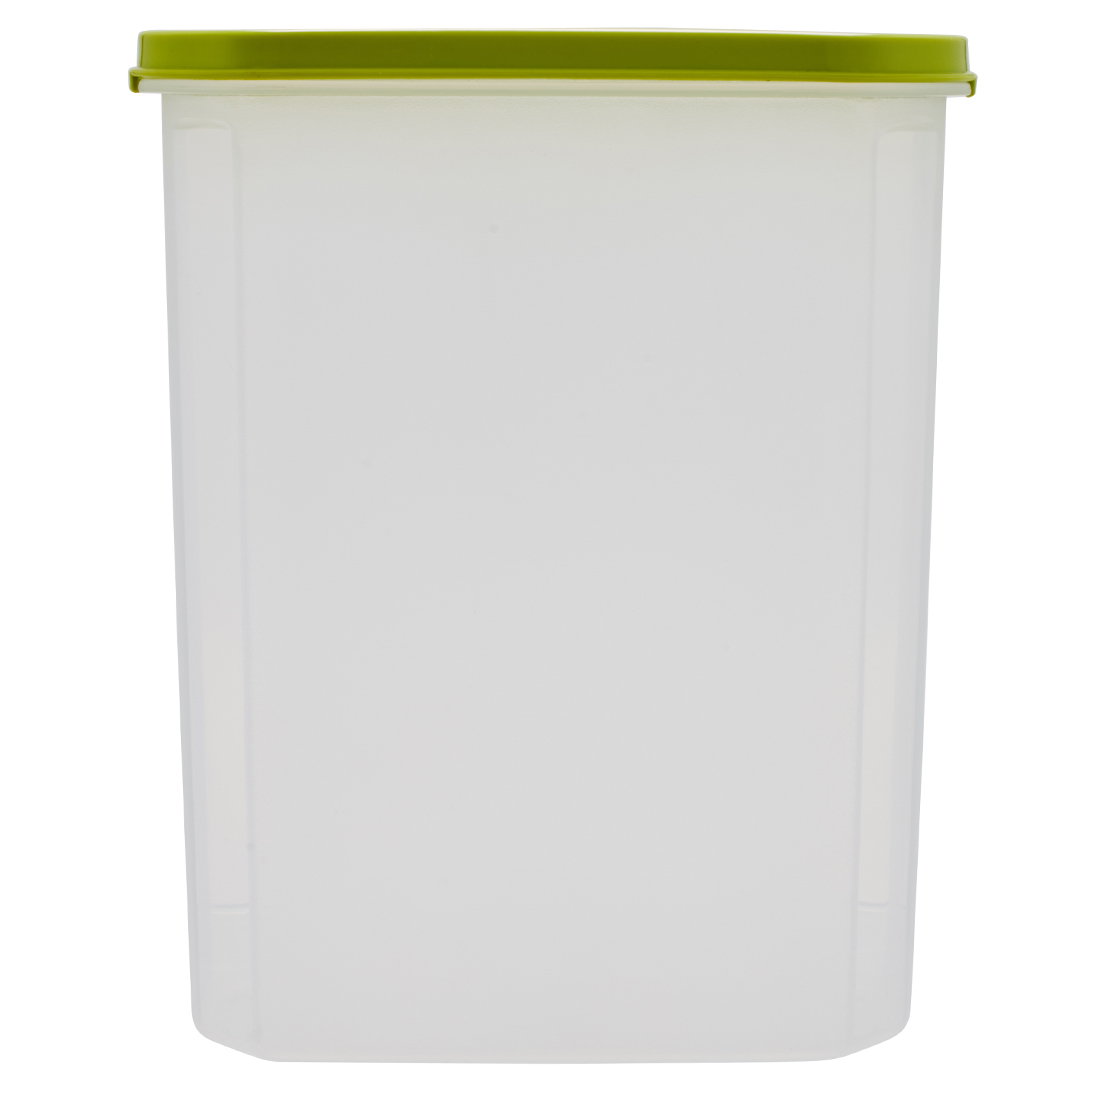 Kitchen Modular Oval 2400 Ml Green Plastic Containers in Green Colour by Living Essence